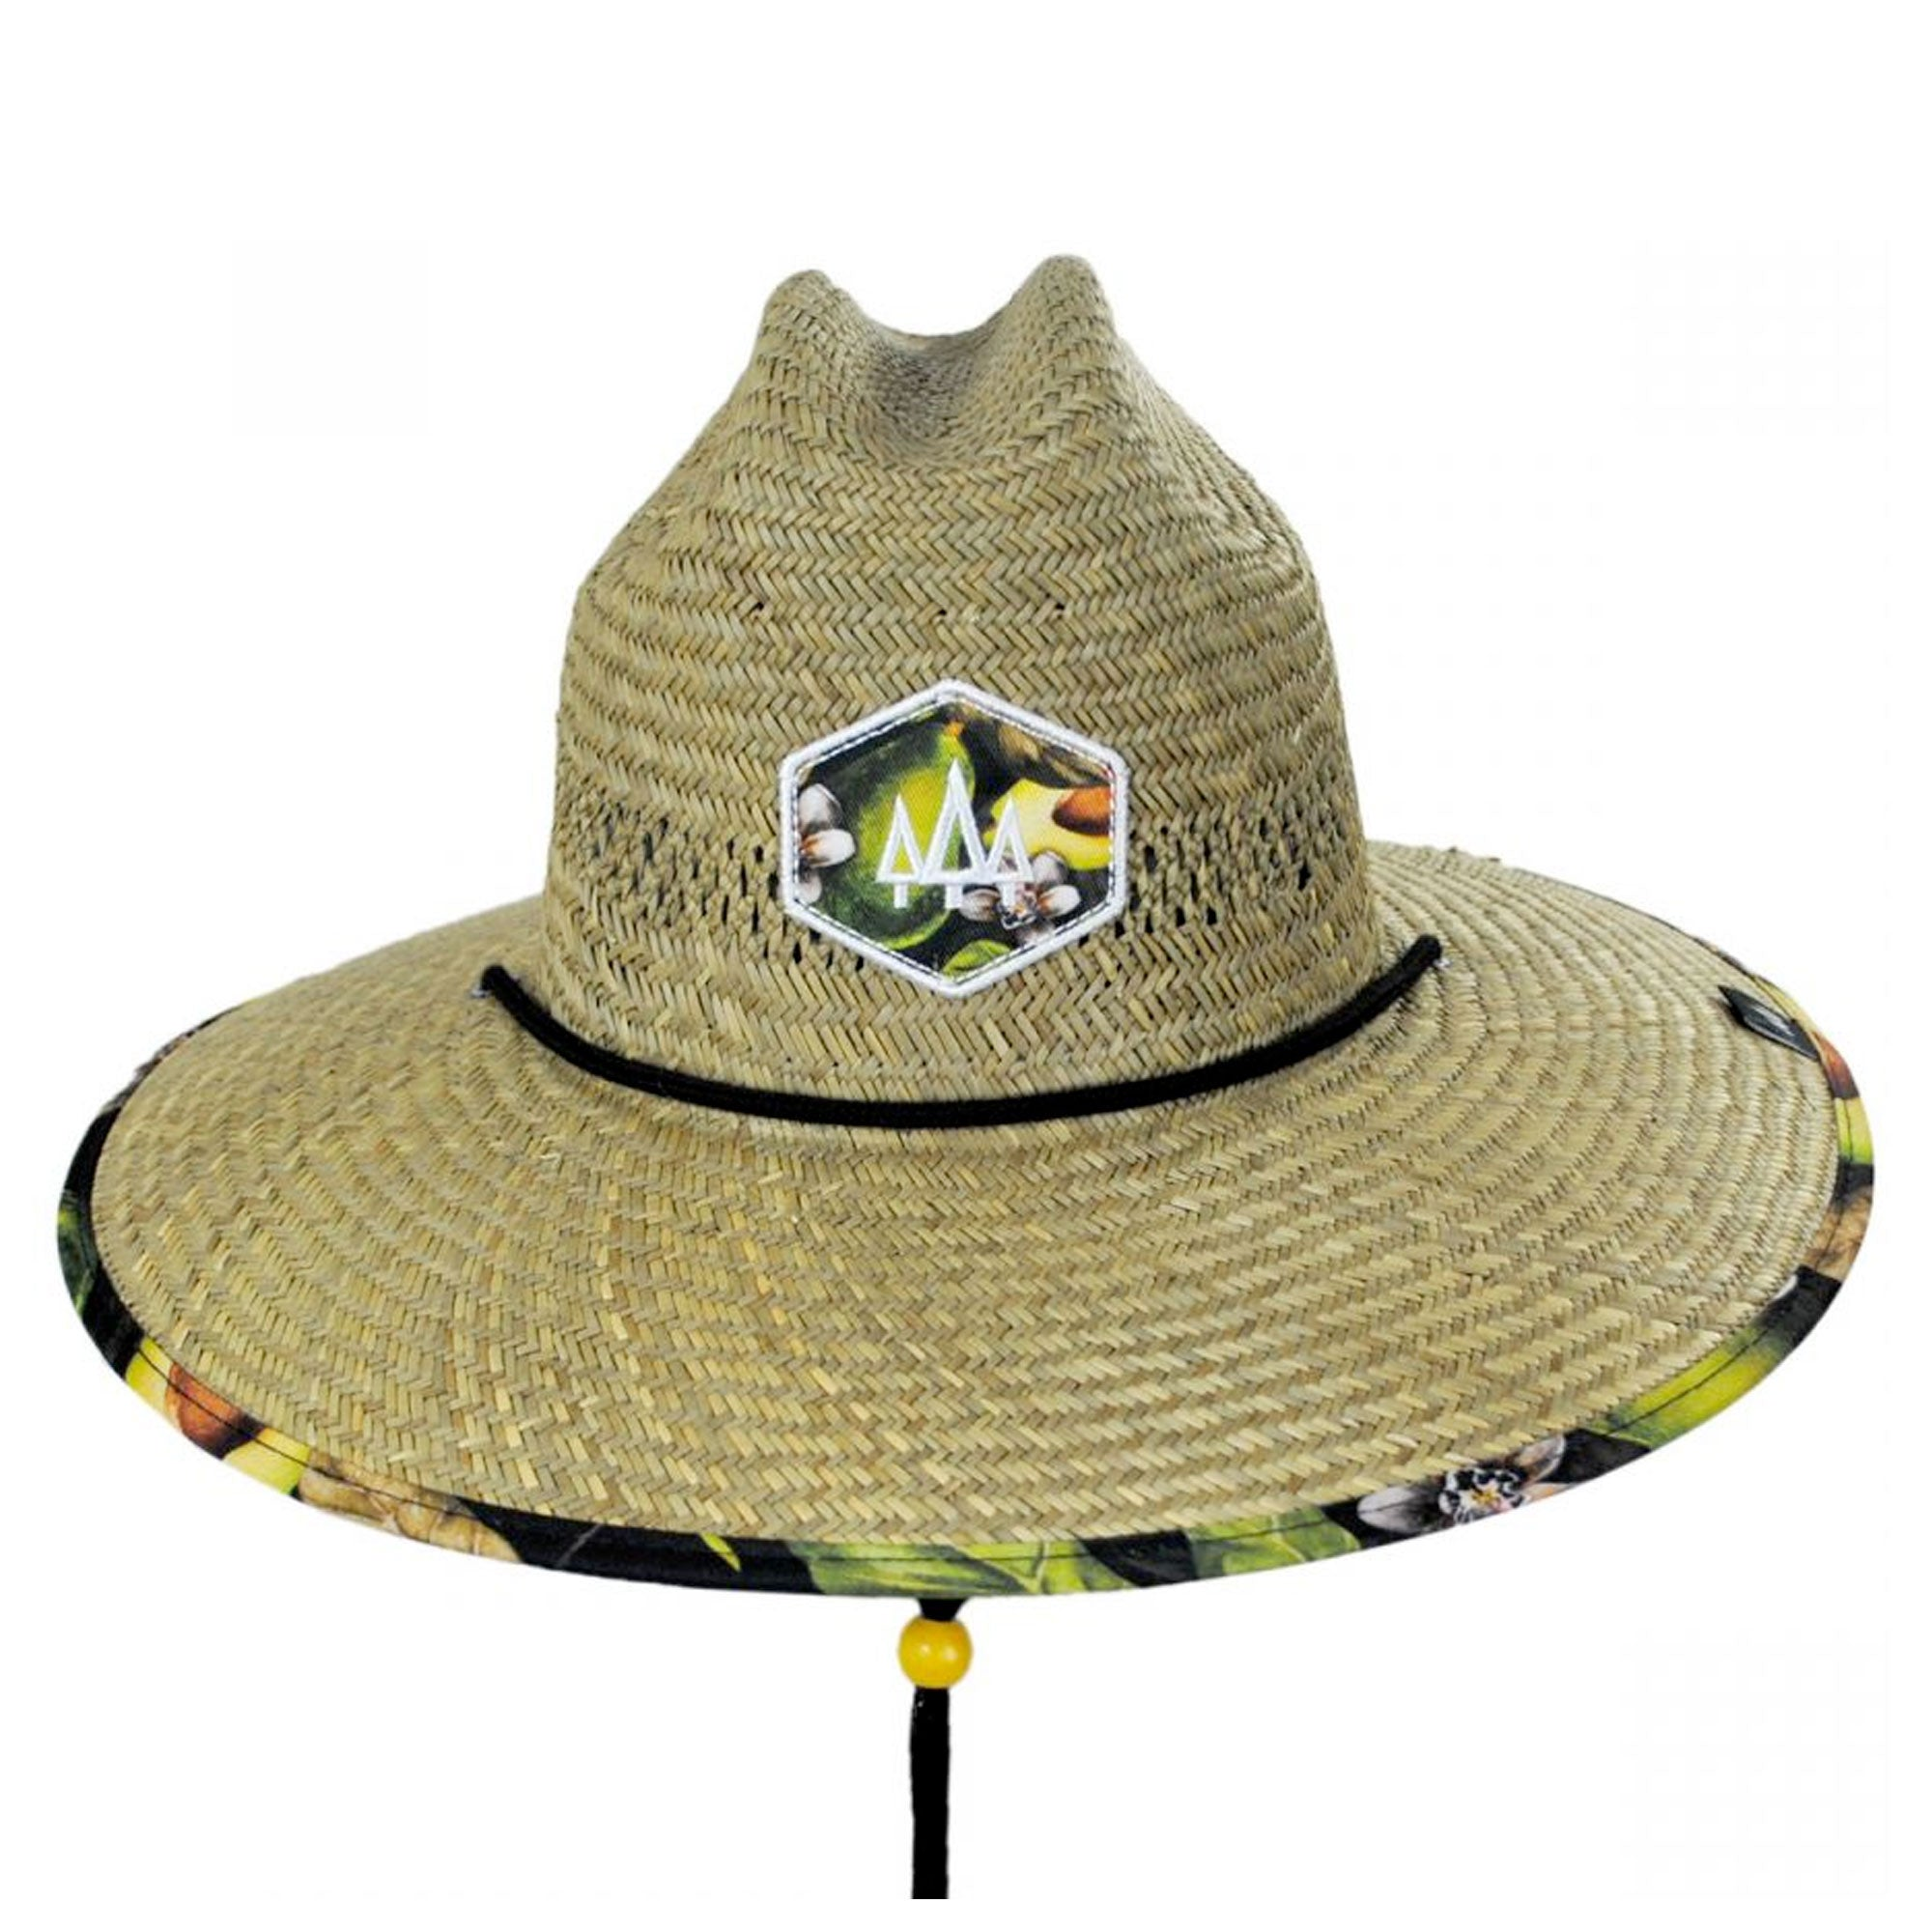 Hemlock Hat Co. Grove Straw Hat